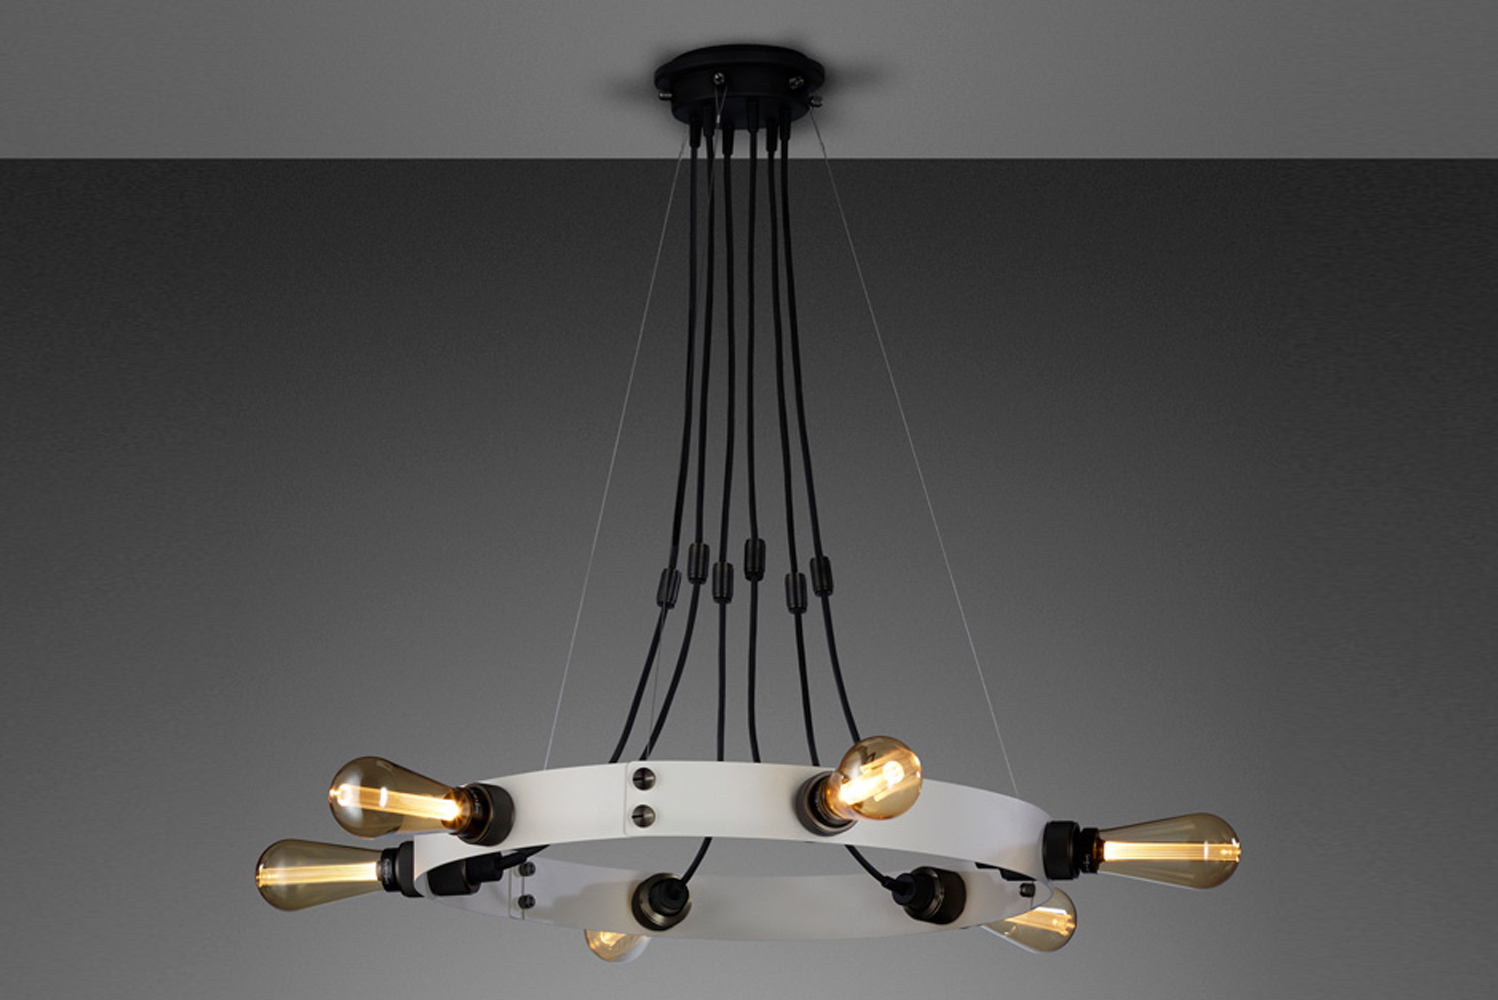 Introducing Hero, a 21st-century industrial-style chandelier.